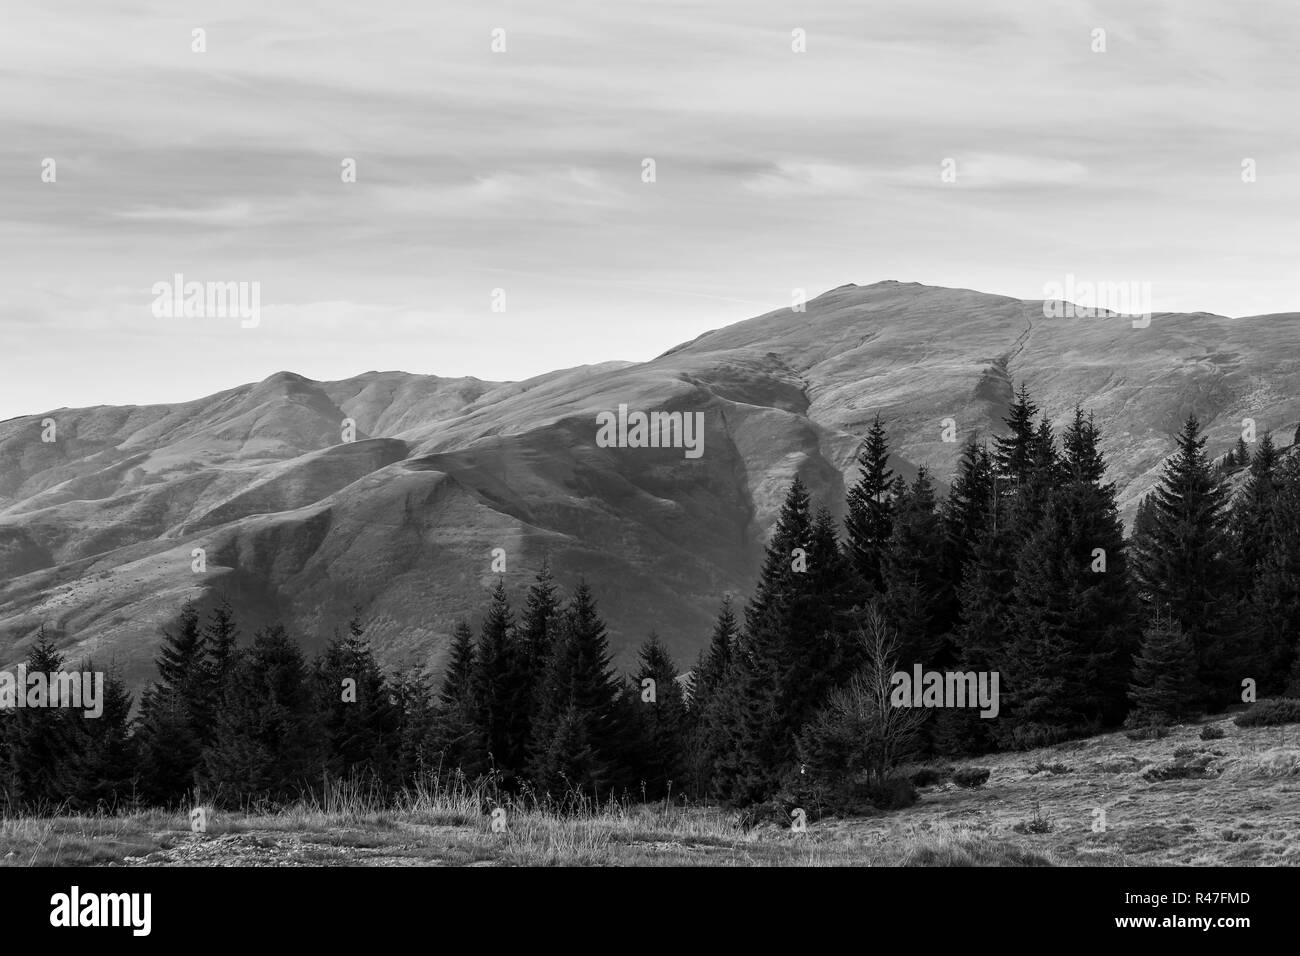 Black and white view of vast highlands of Old mountain in Serbia and foreground line of pine trees - Stock Image